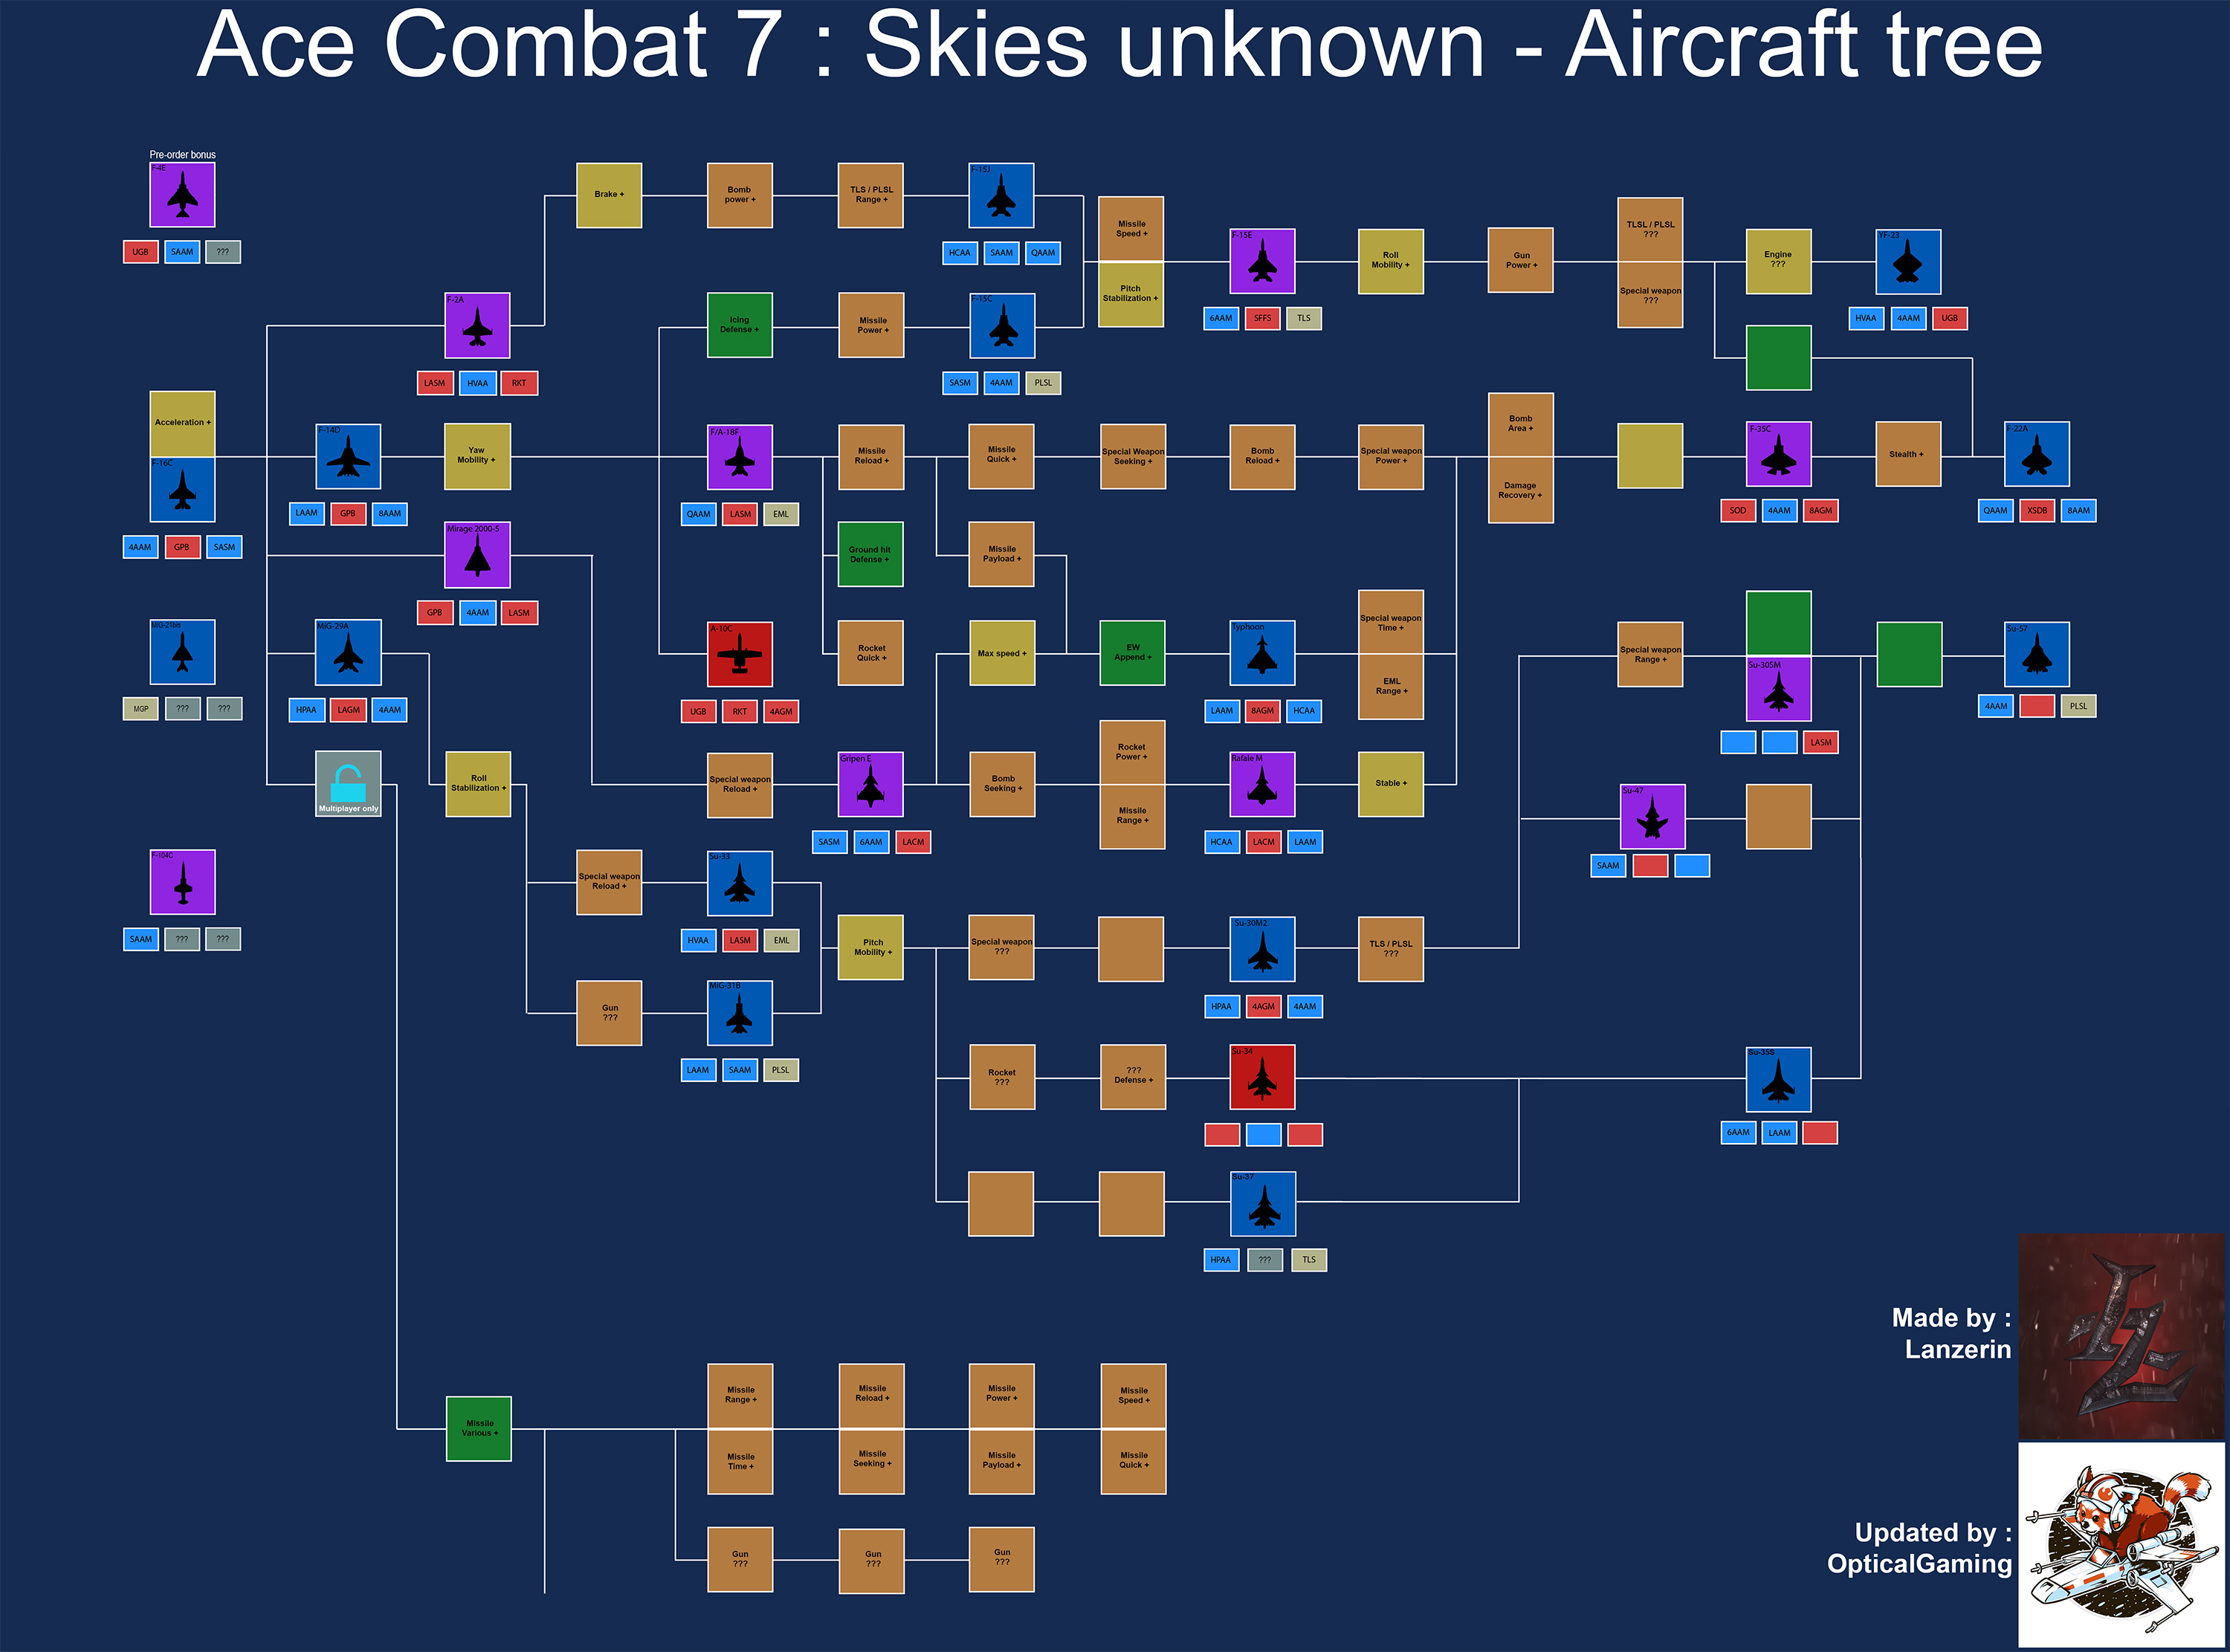 ac7-ace-combat-7-skies-avion-arbre-tree-aircraft-debloquer-amelioration-comment-rapidement